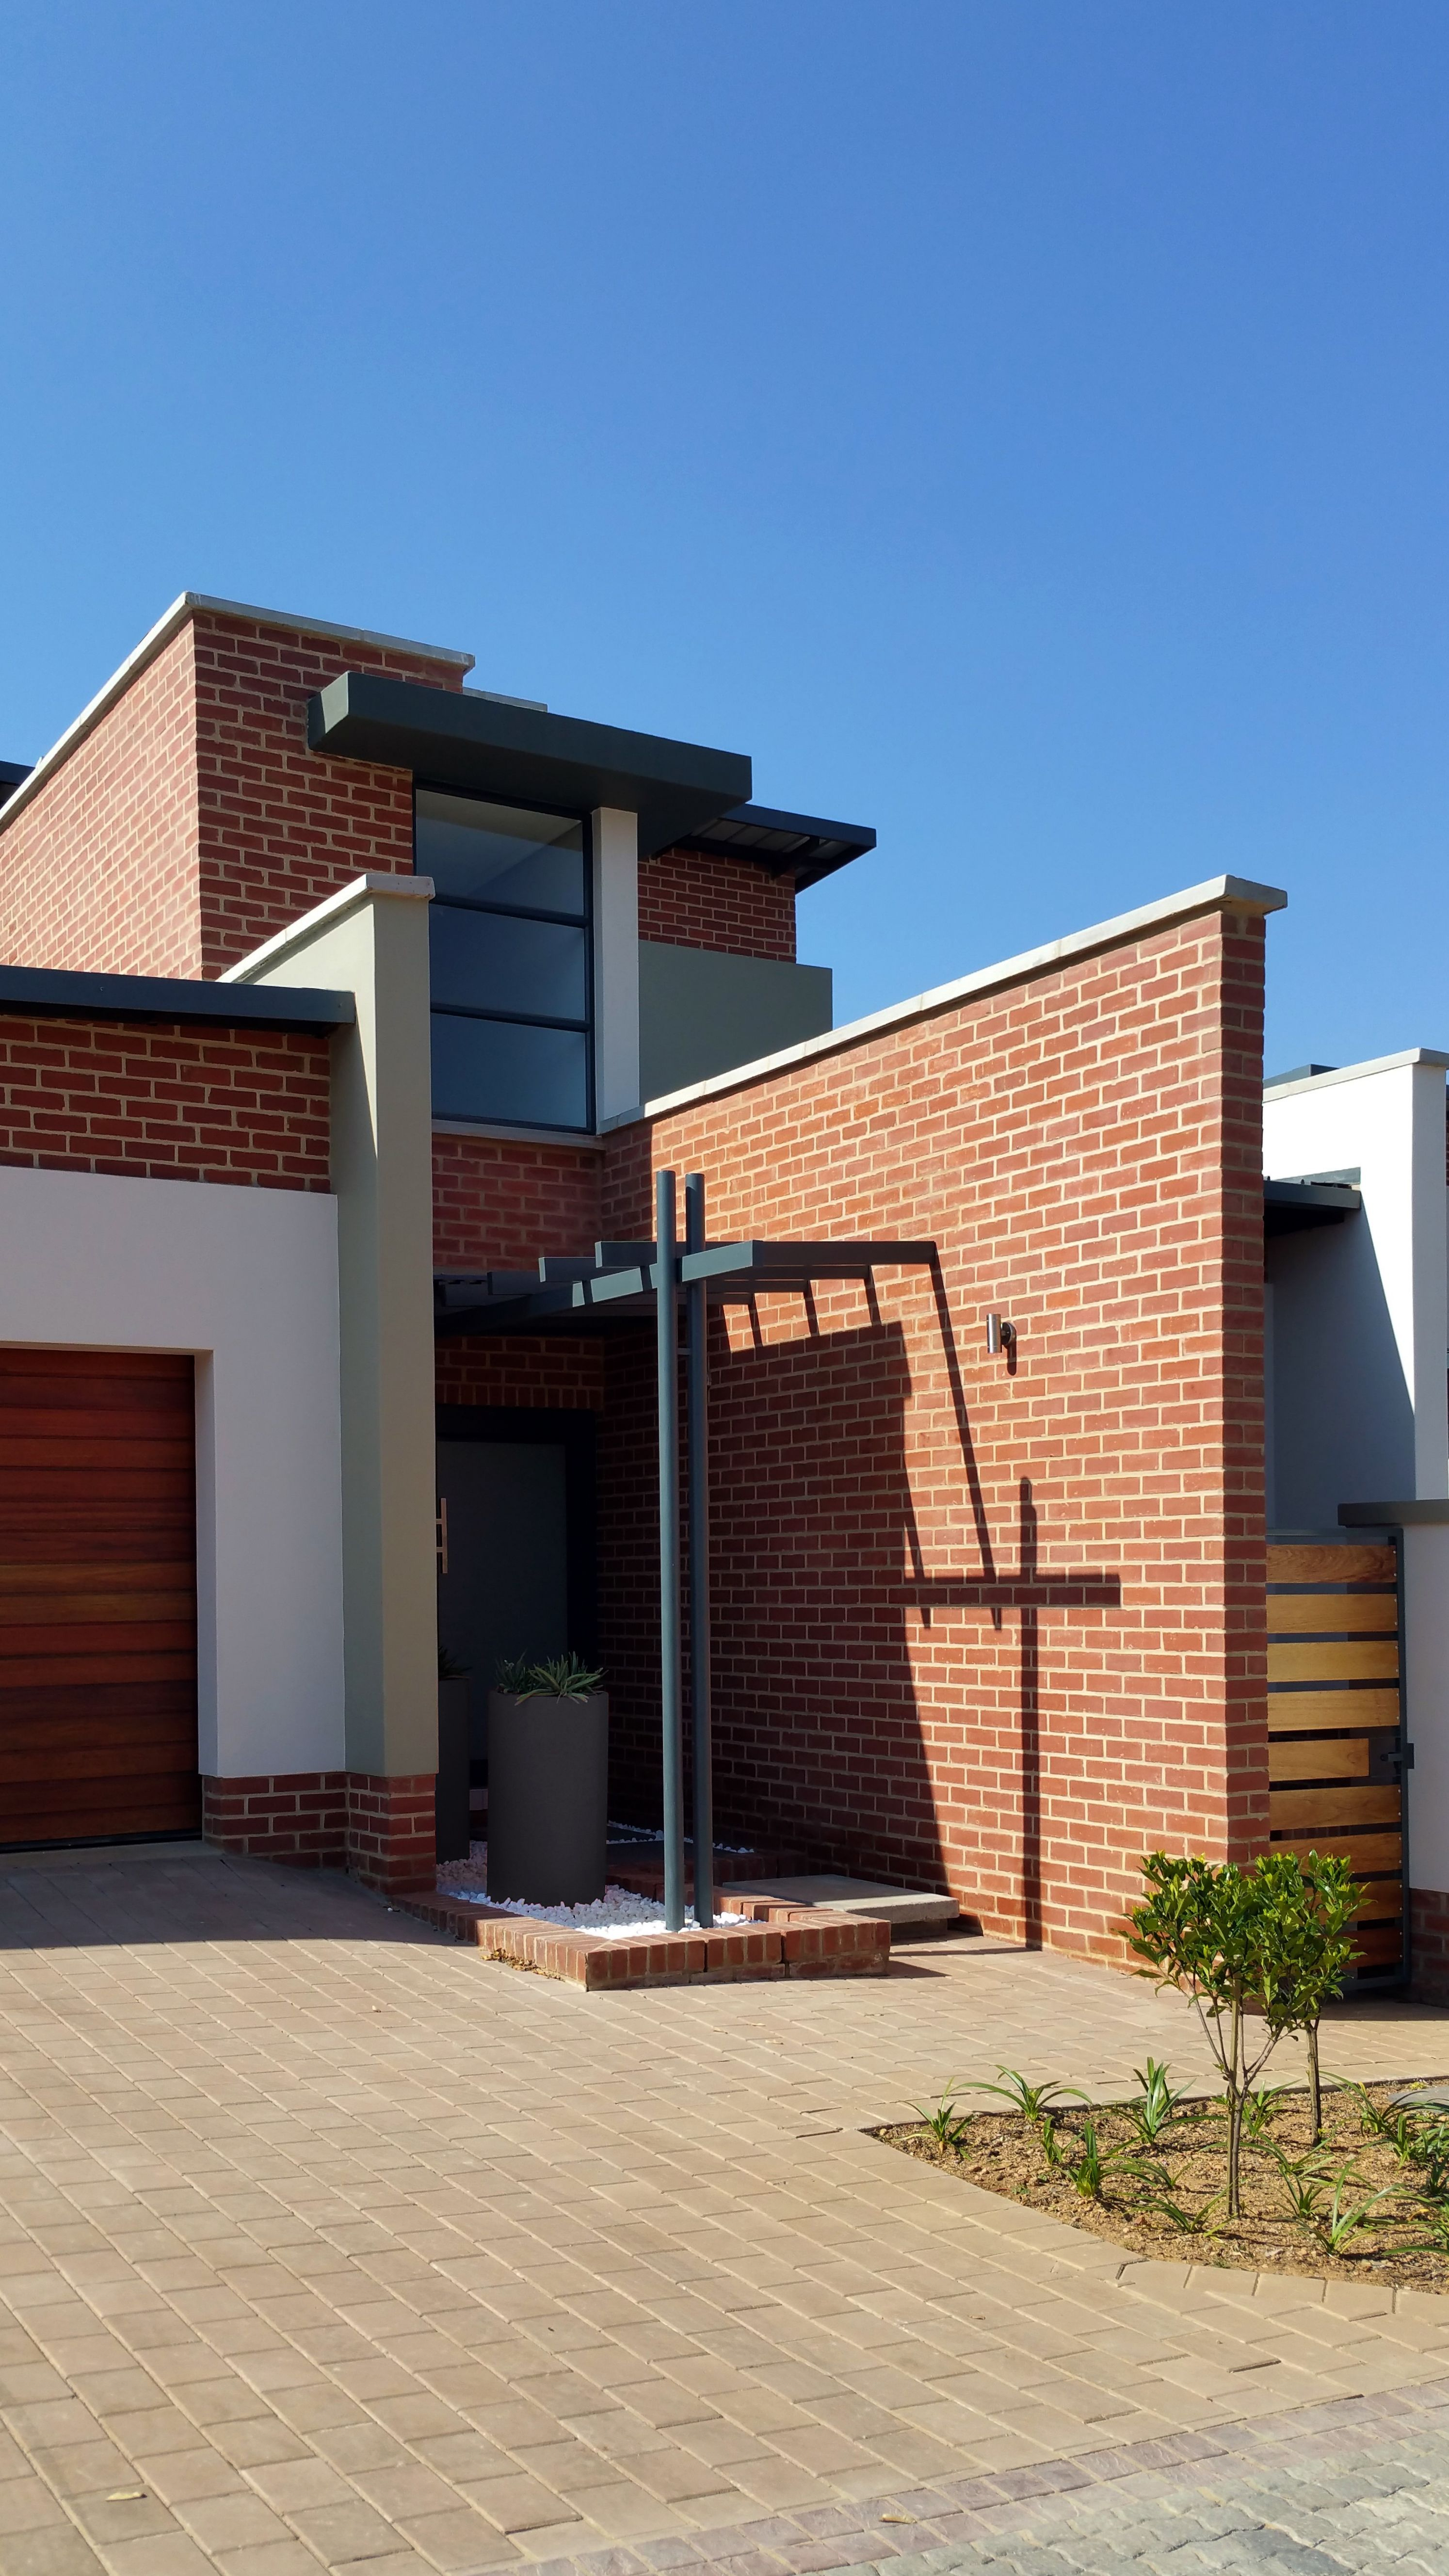 South African Residential Architecture 5 New Houses In Menlo Park Pretoria By Mary Anne Da Costa Architect